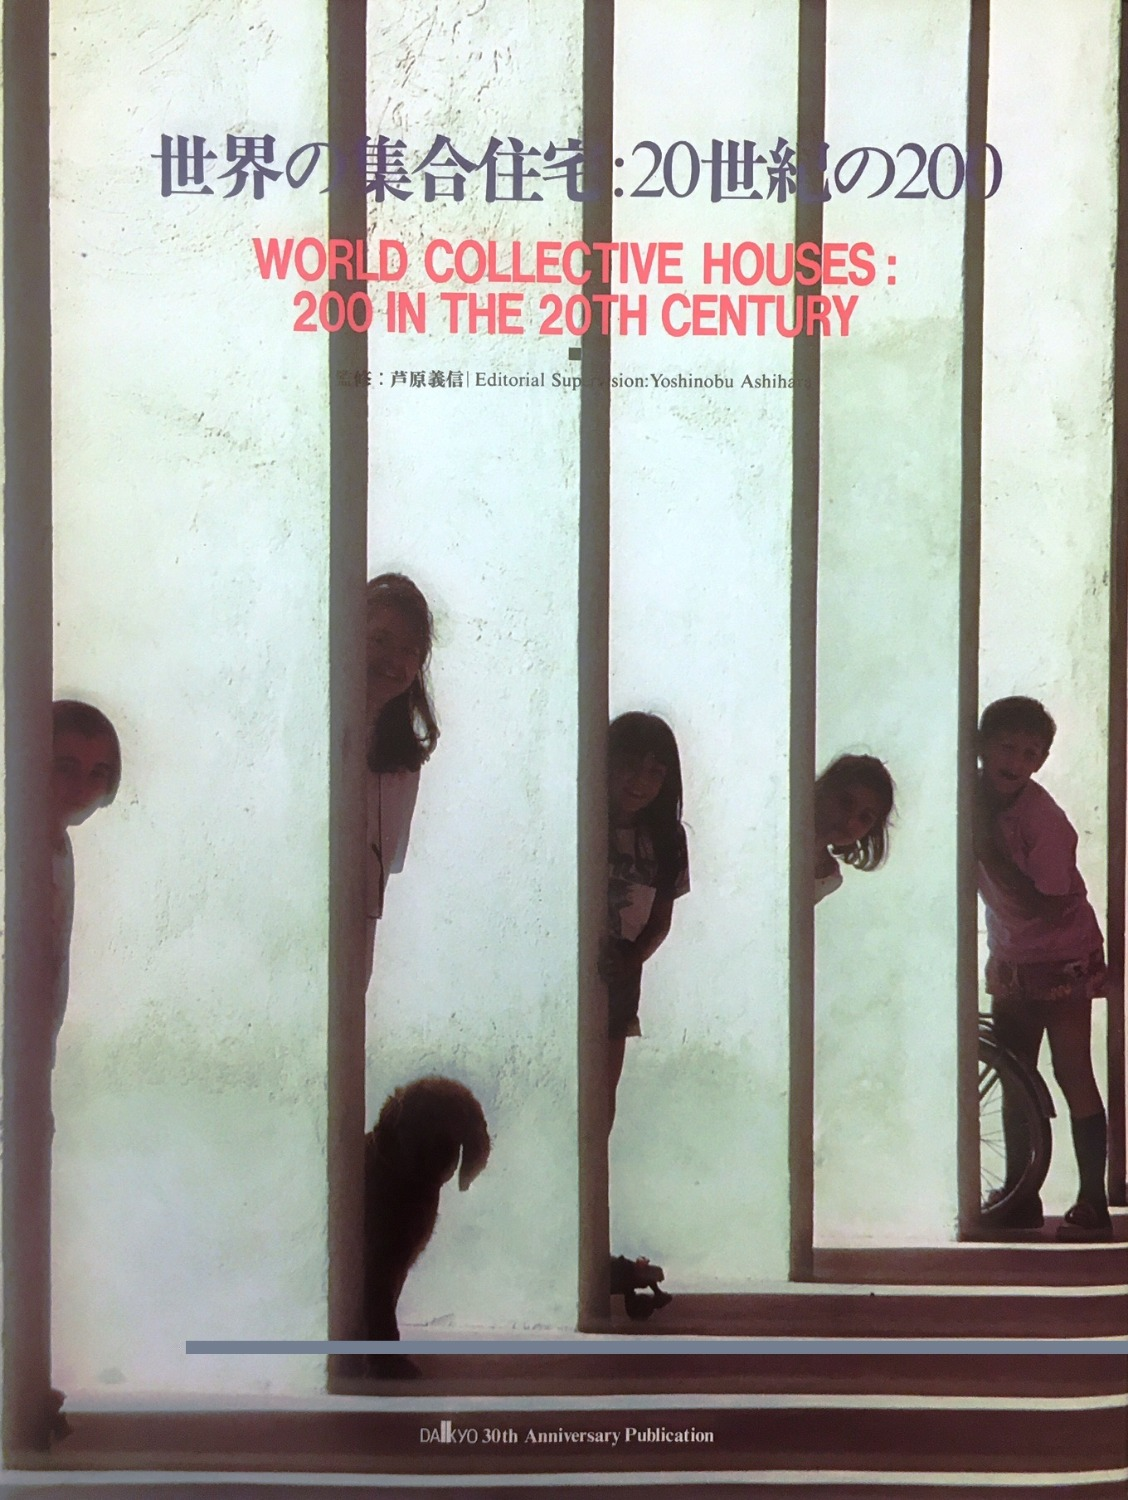 World Collective Houses